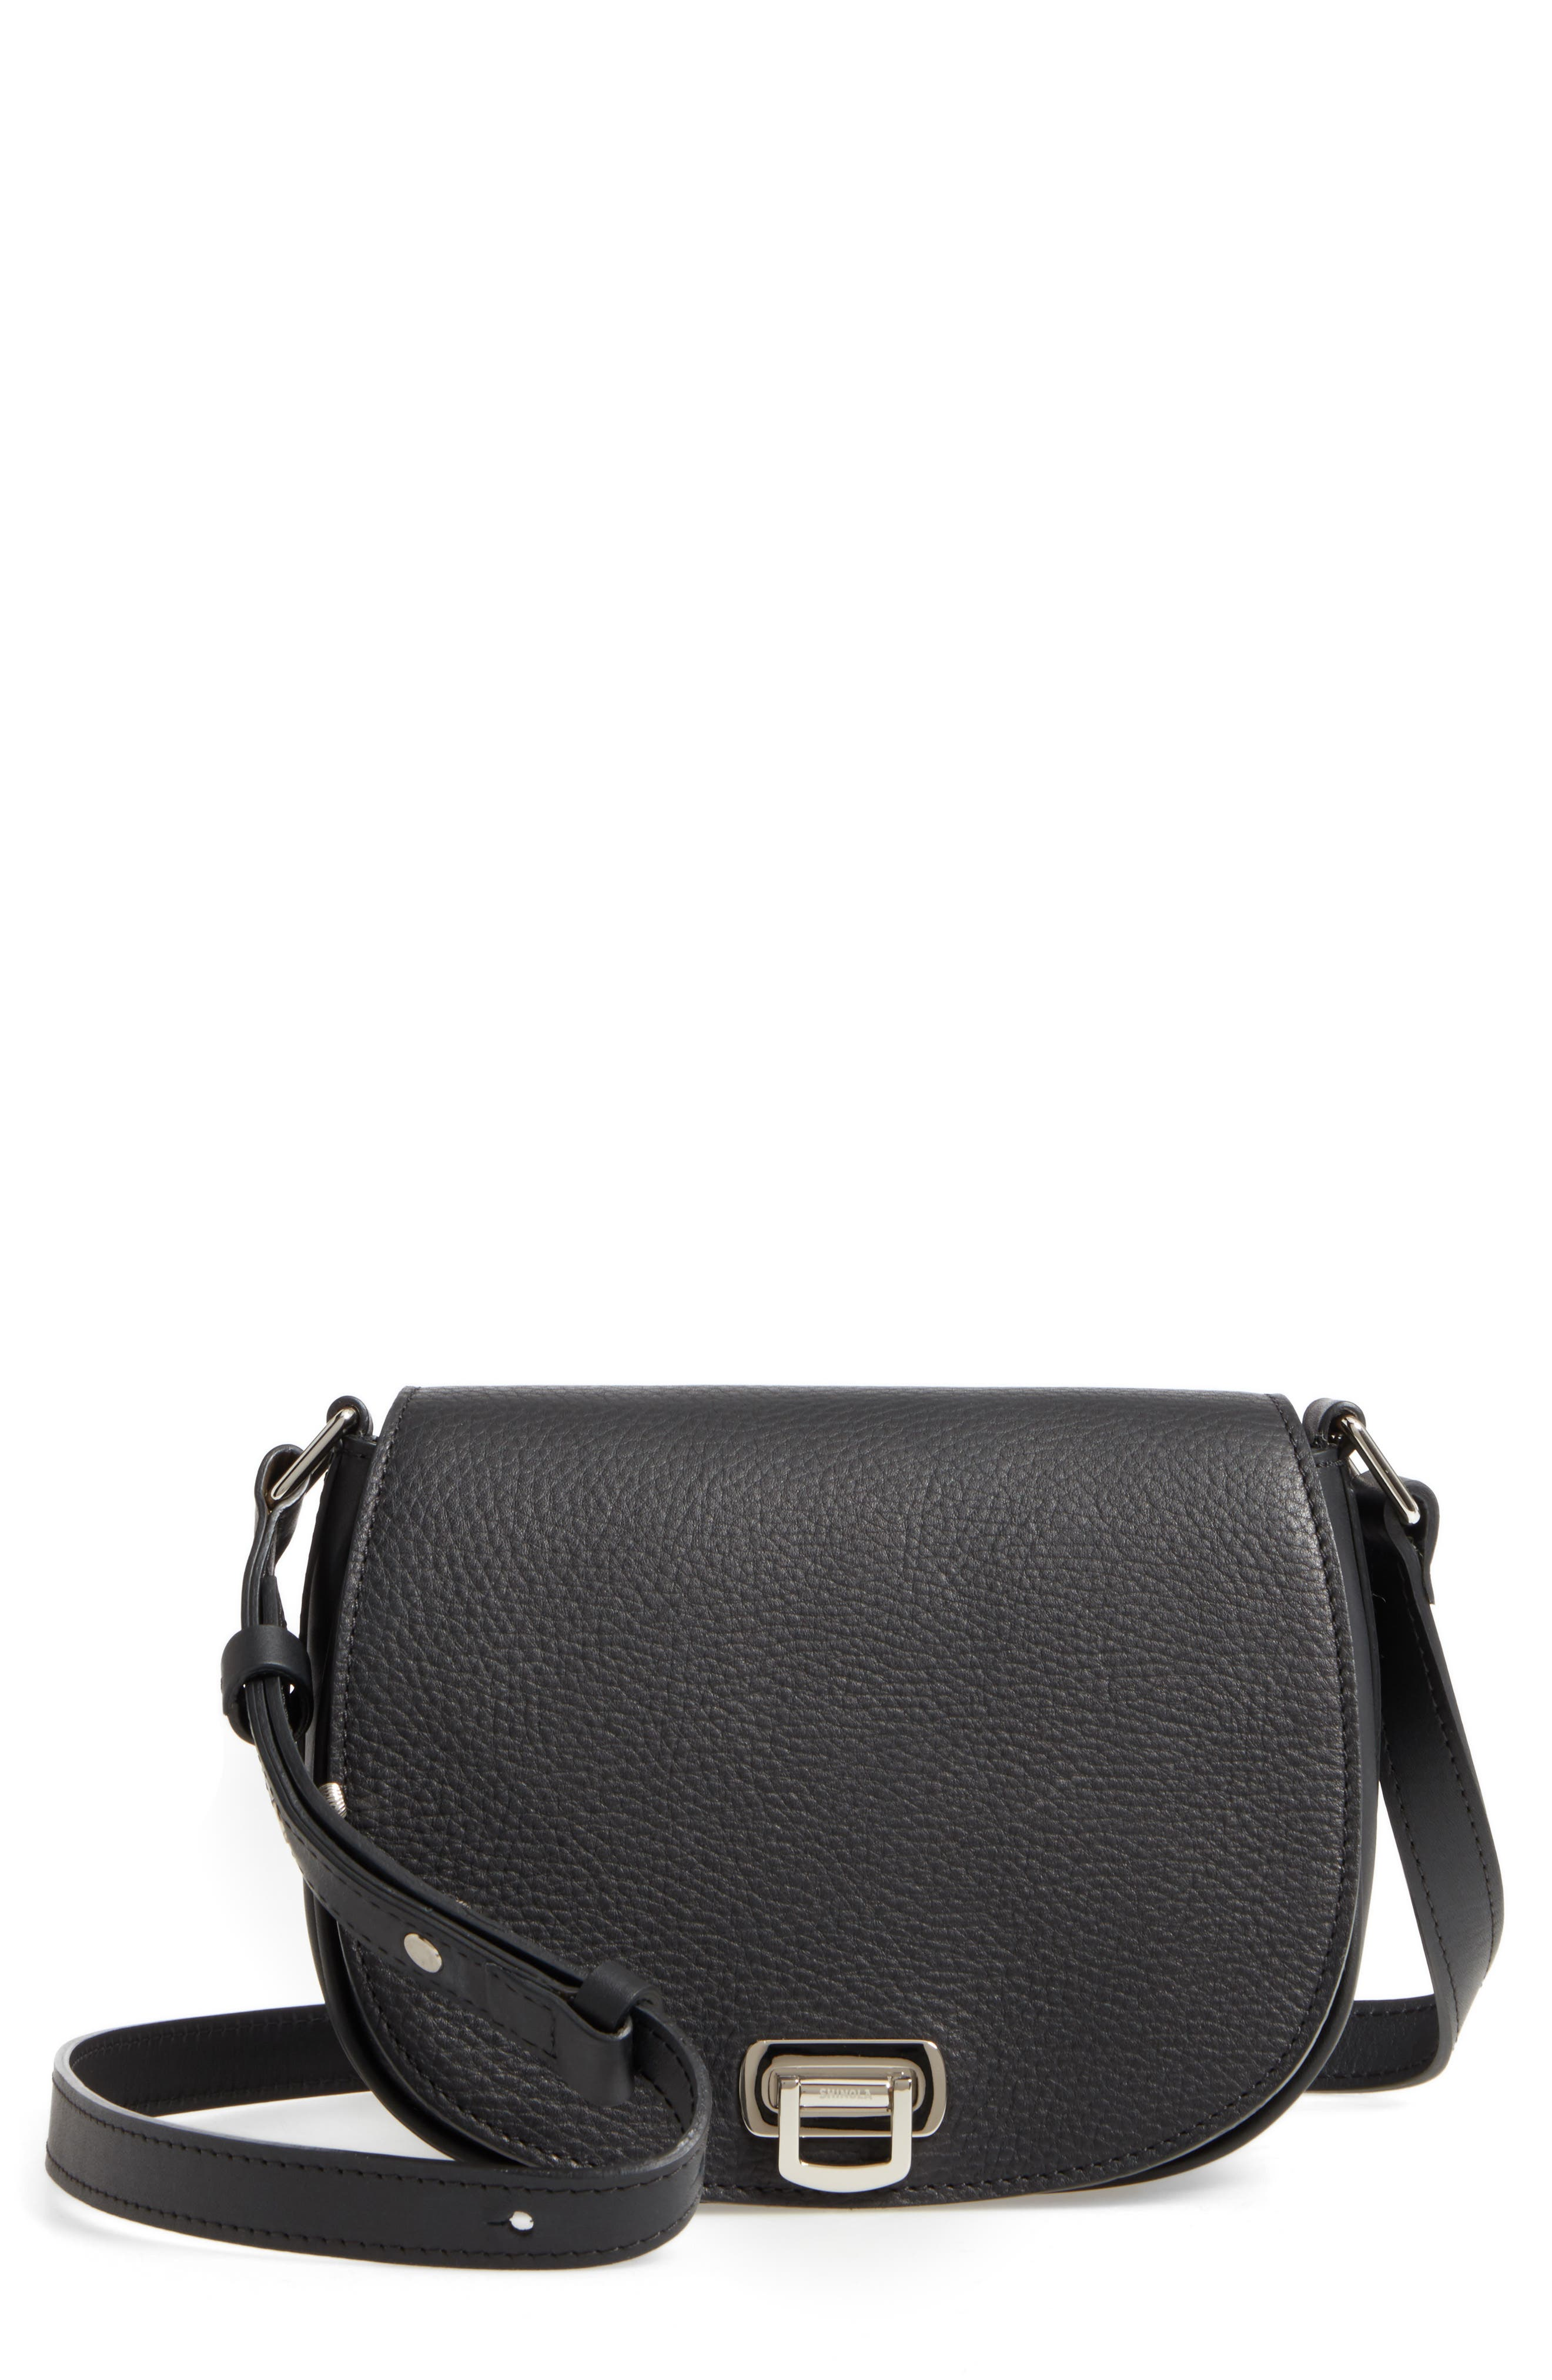 Main Image - Shinola Calfskin Leather Shoulder Bag